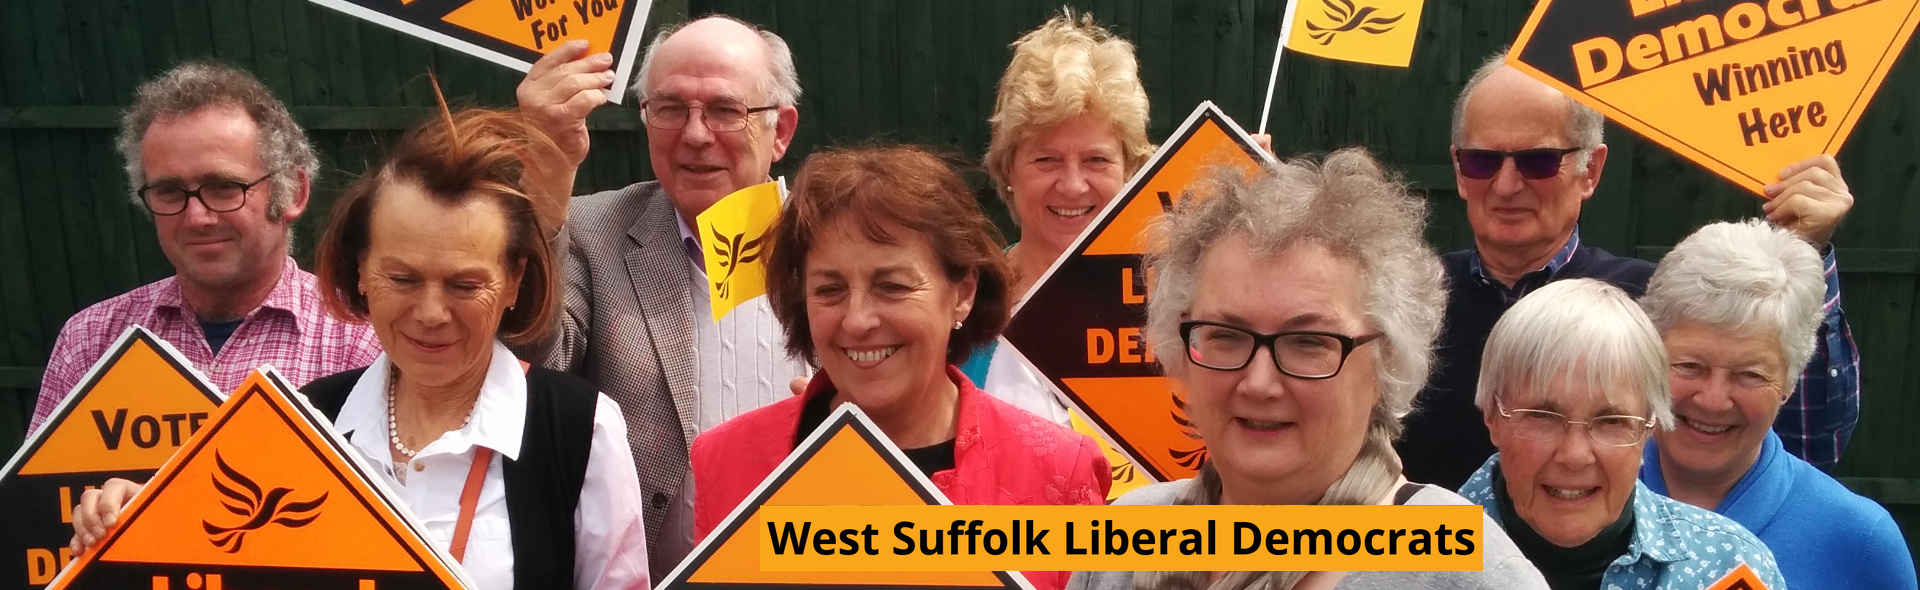 West Suffolk Liberal Democrats (Photo by Chris Lale wslibdems.org.uk)